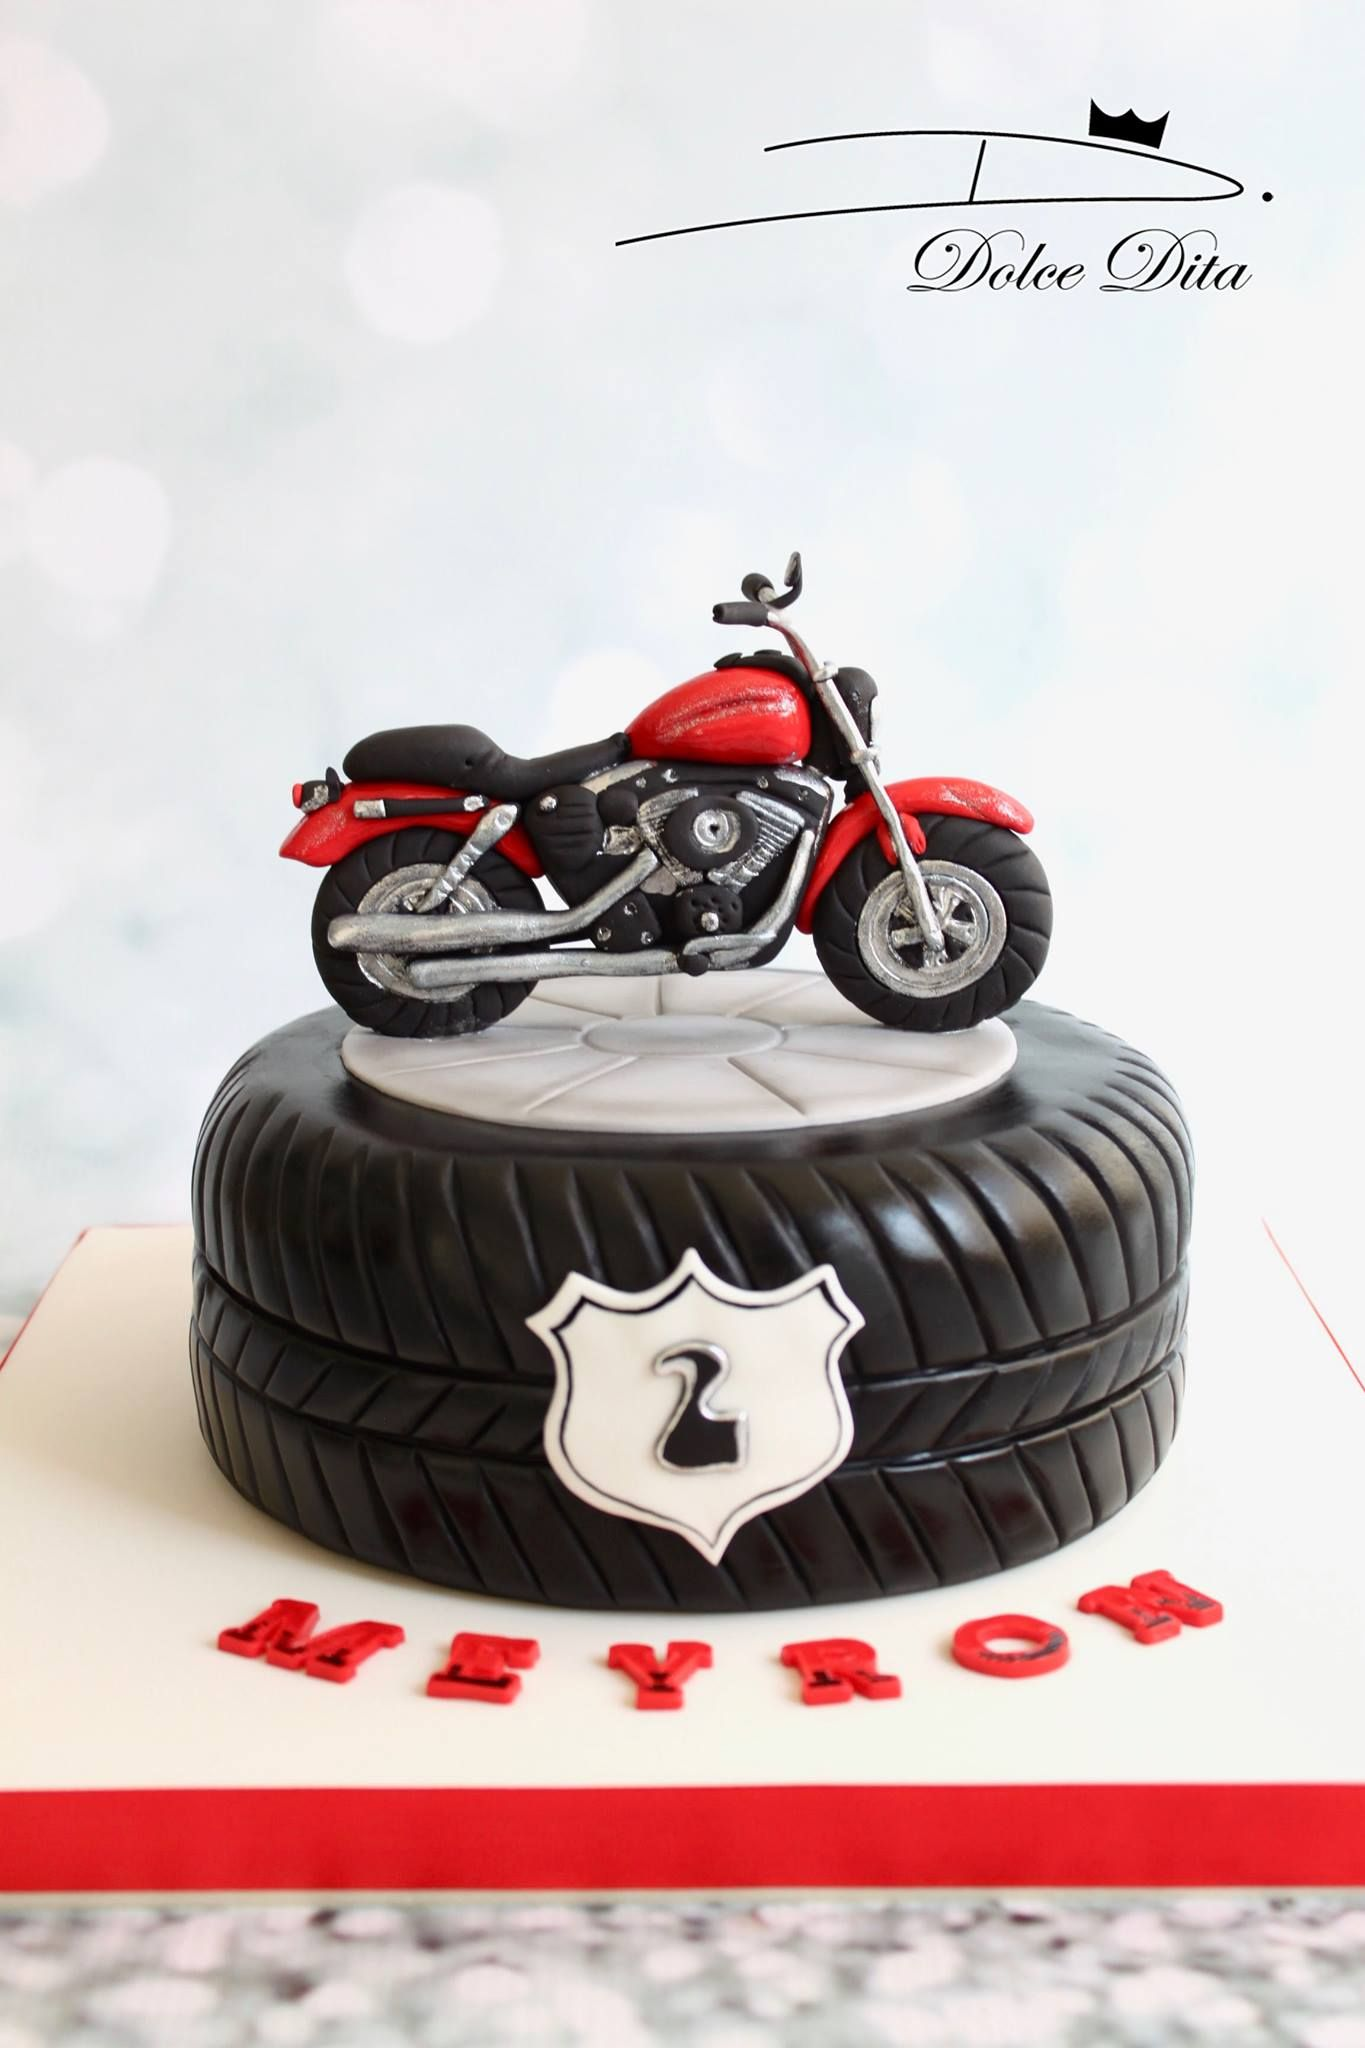 Cake Cakedesign Gateau Dolcedita Motorcycle Birthday Cakes